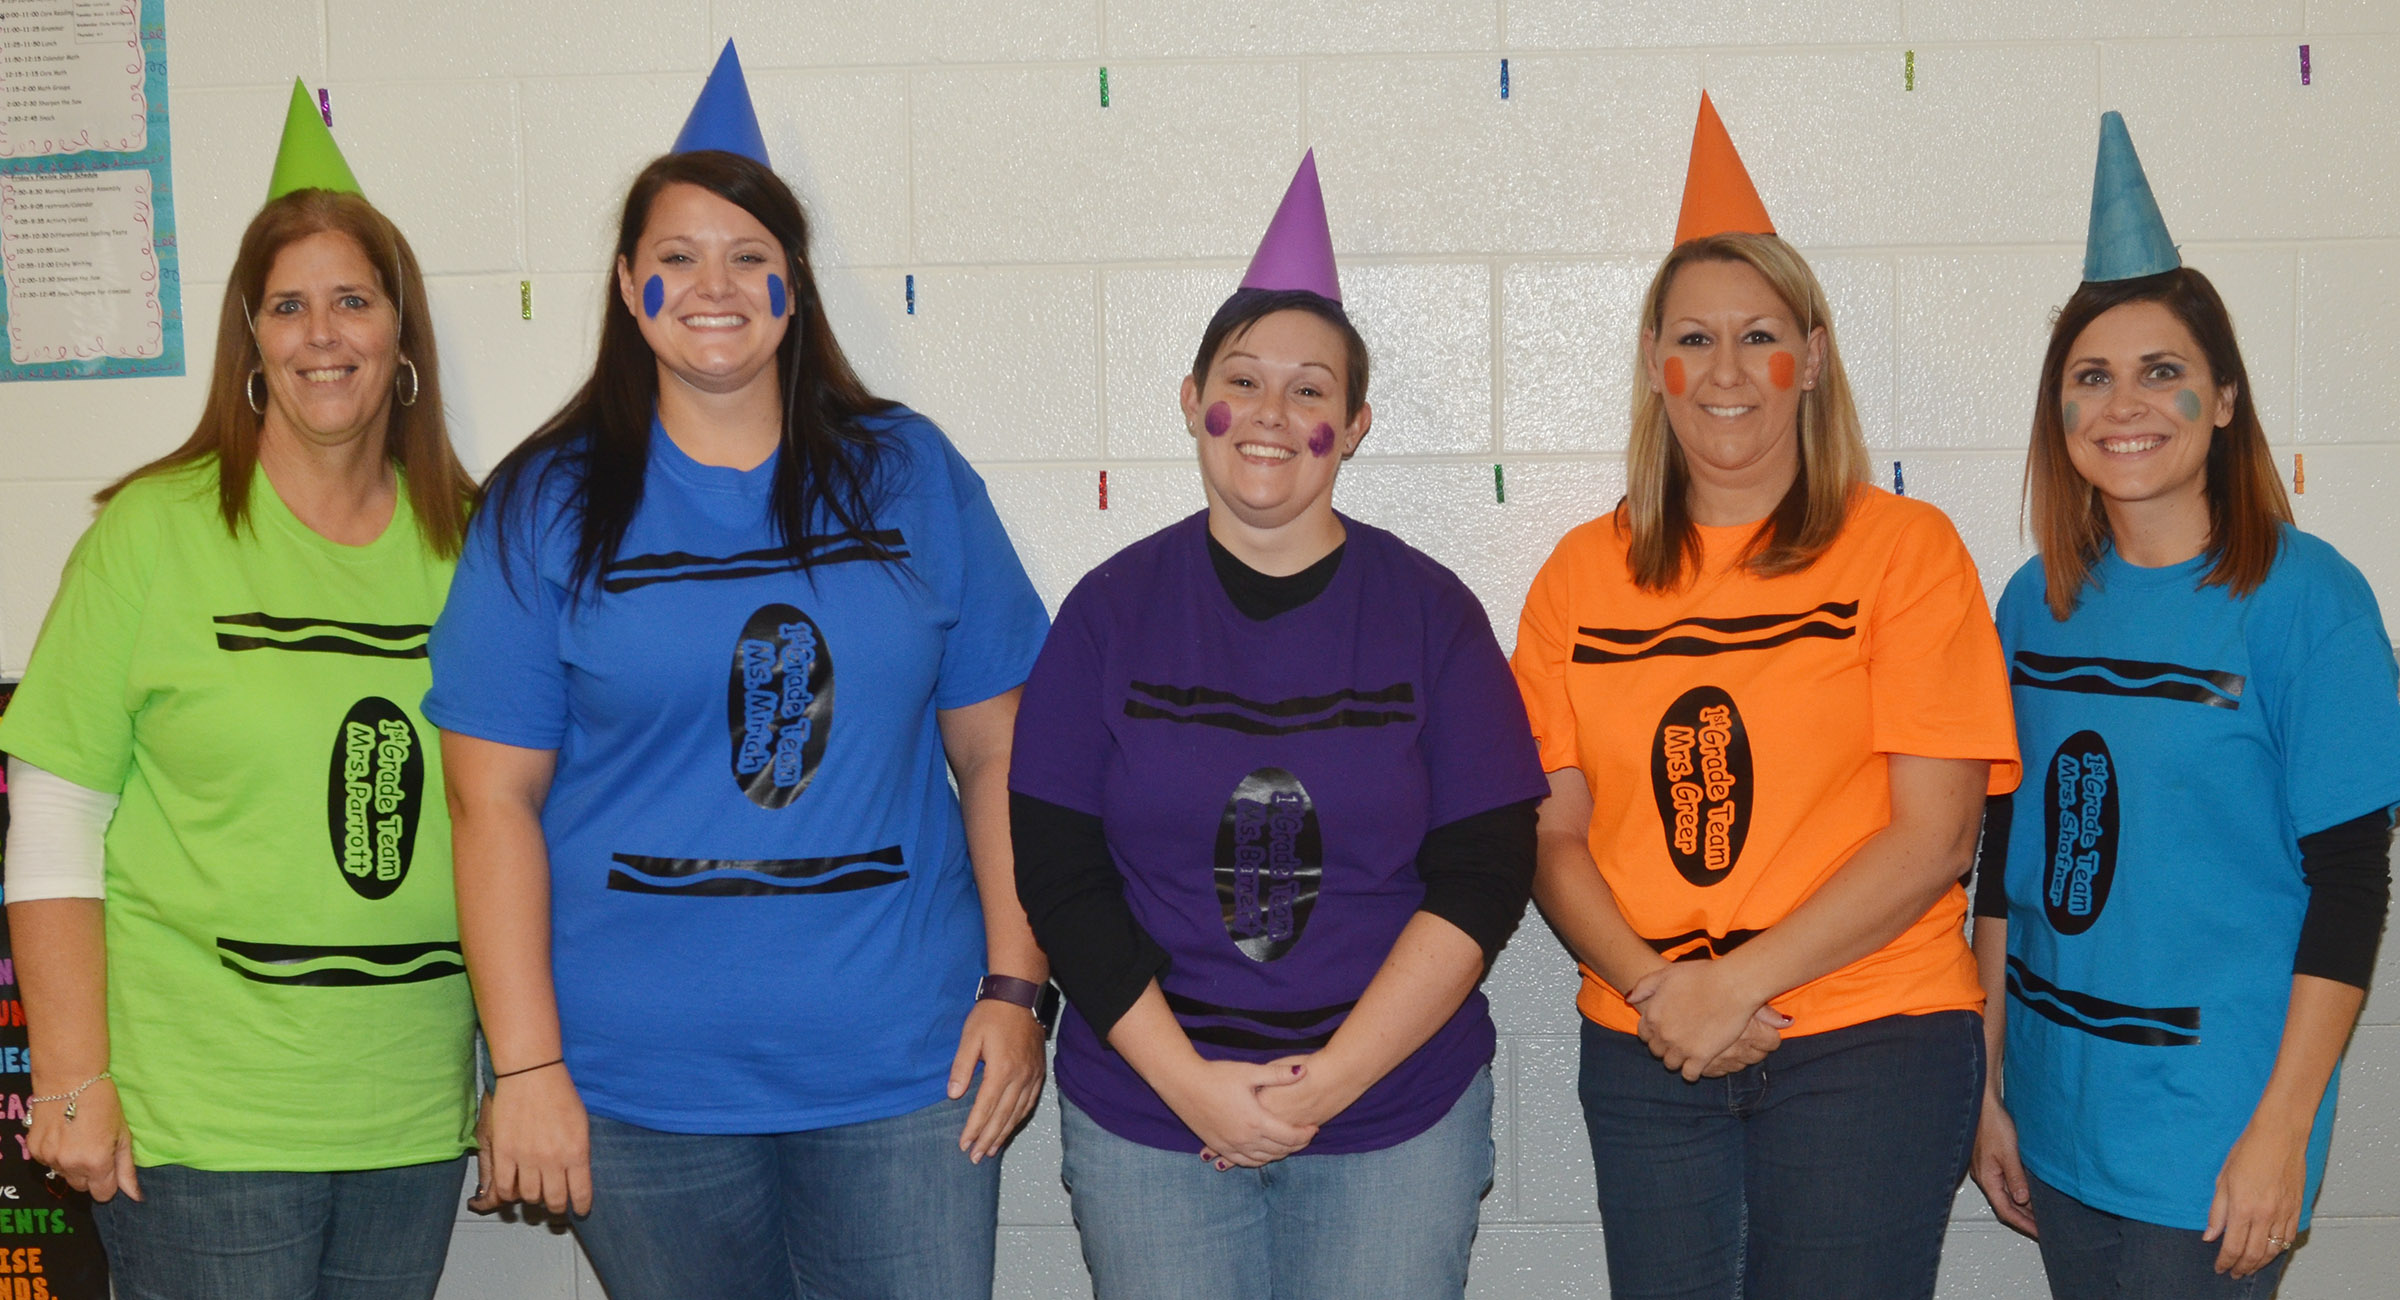 CES teachers and administrators wear their Halloween costumes to raise money for cystic fibrosis research.